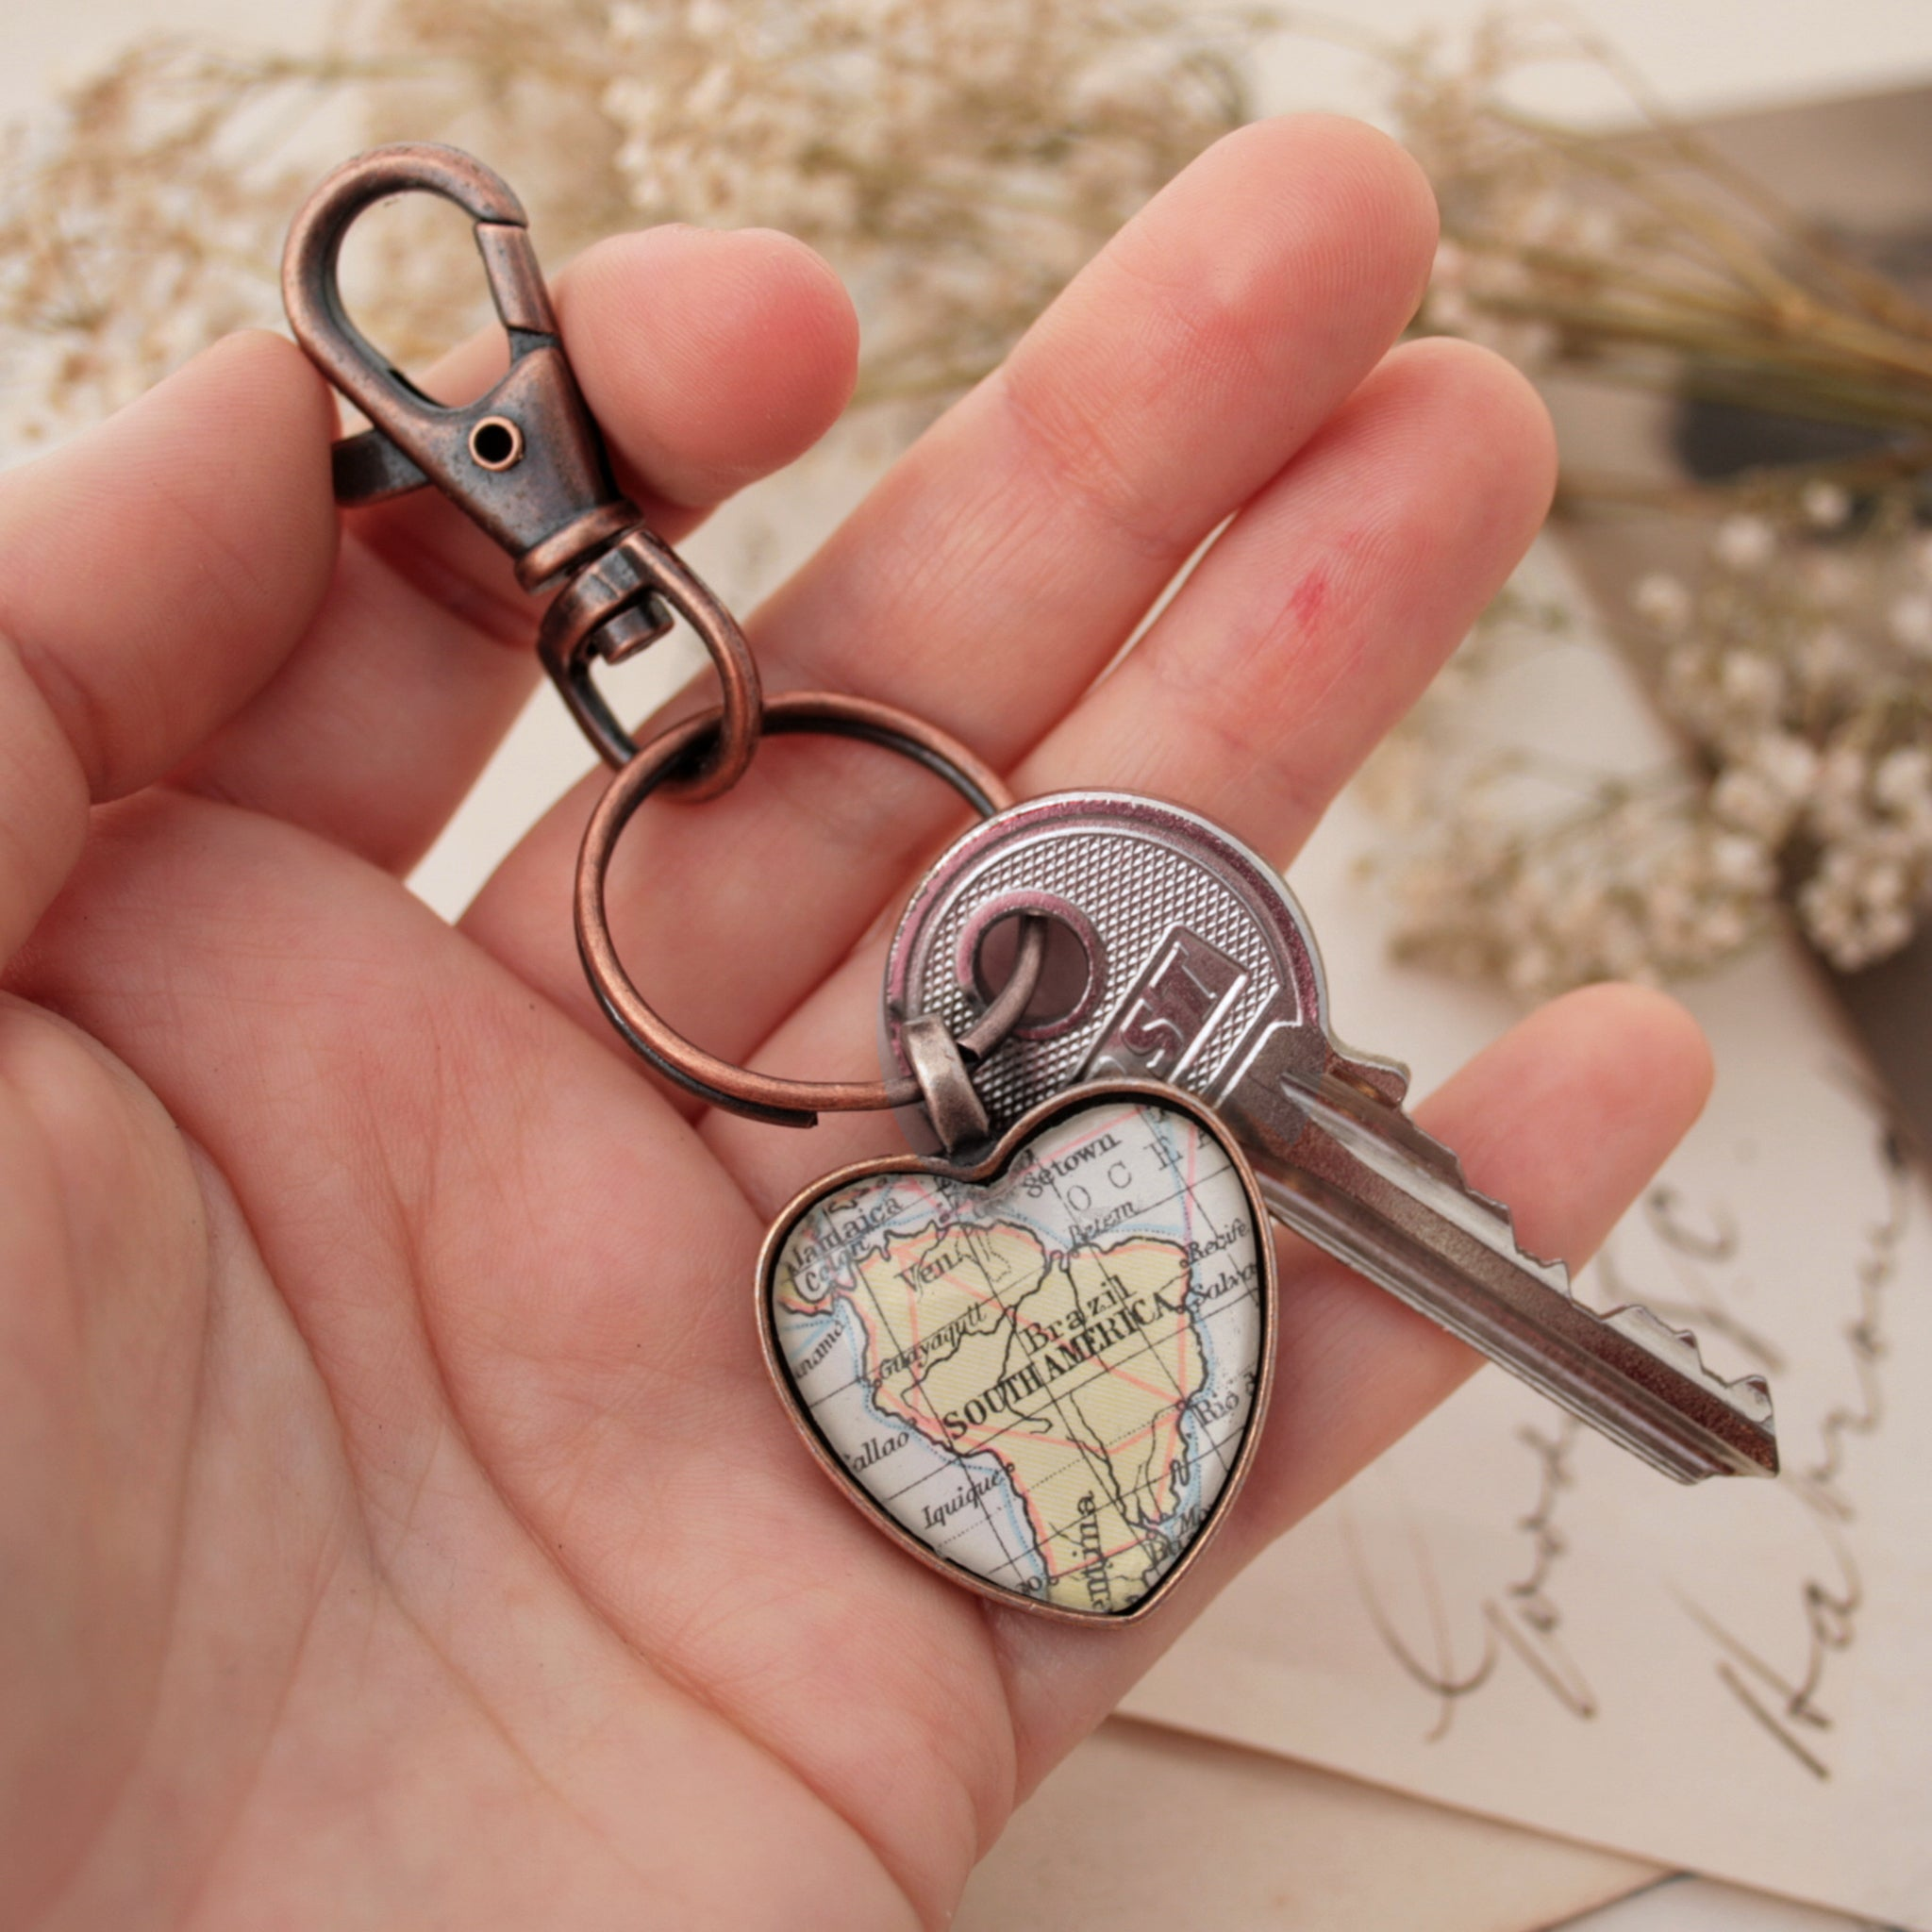 Hold in hand Heart shaped keychain in copper tone featuring map of South America